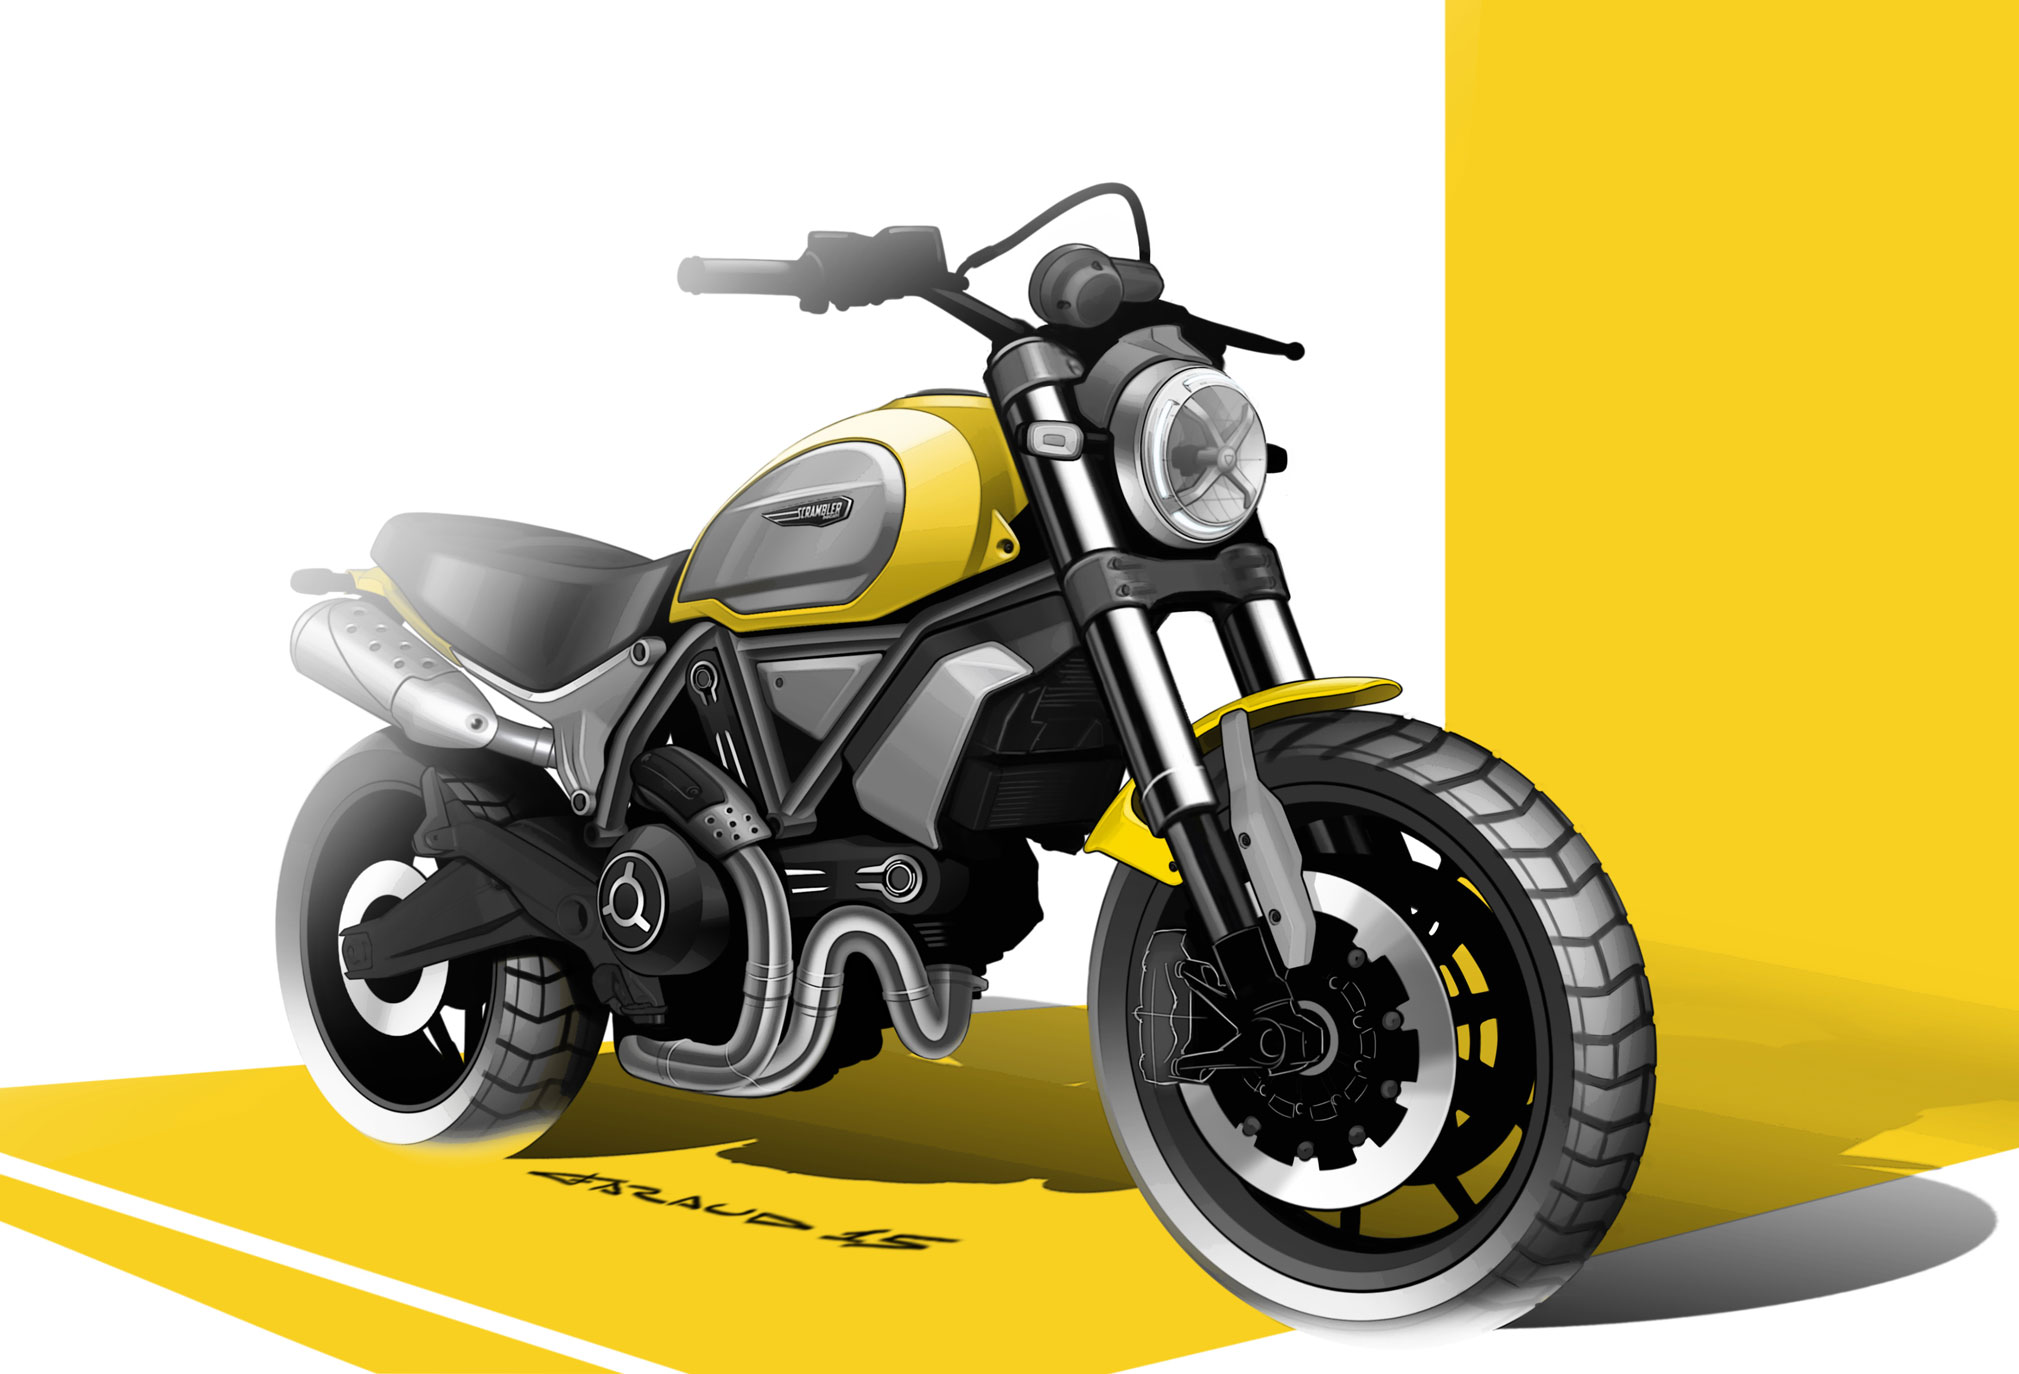 2019 Ducati Scrambler 1100 Guide Total Motorcycle